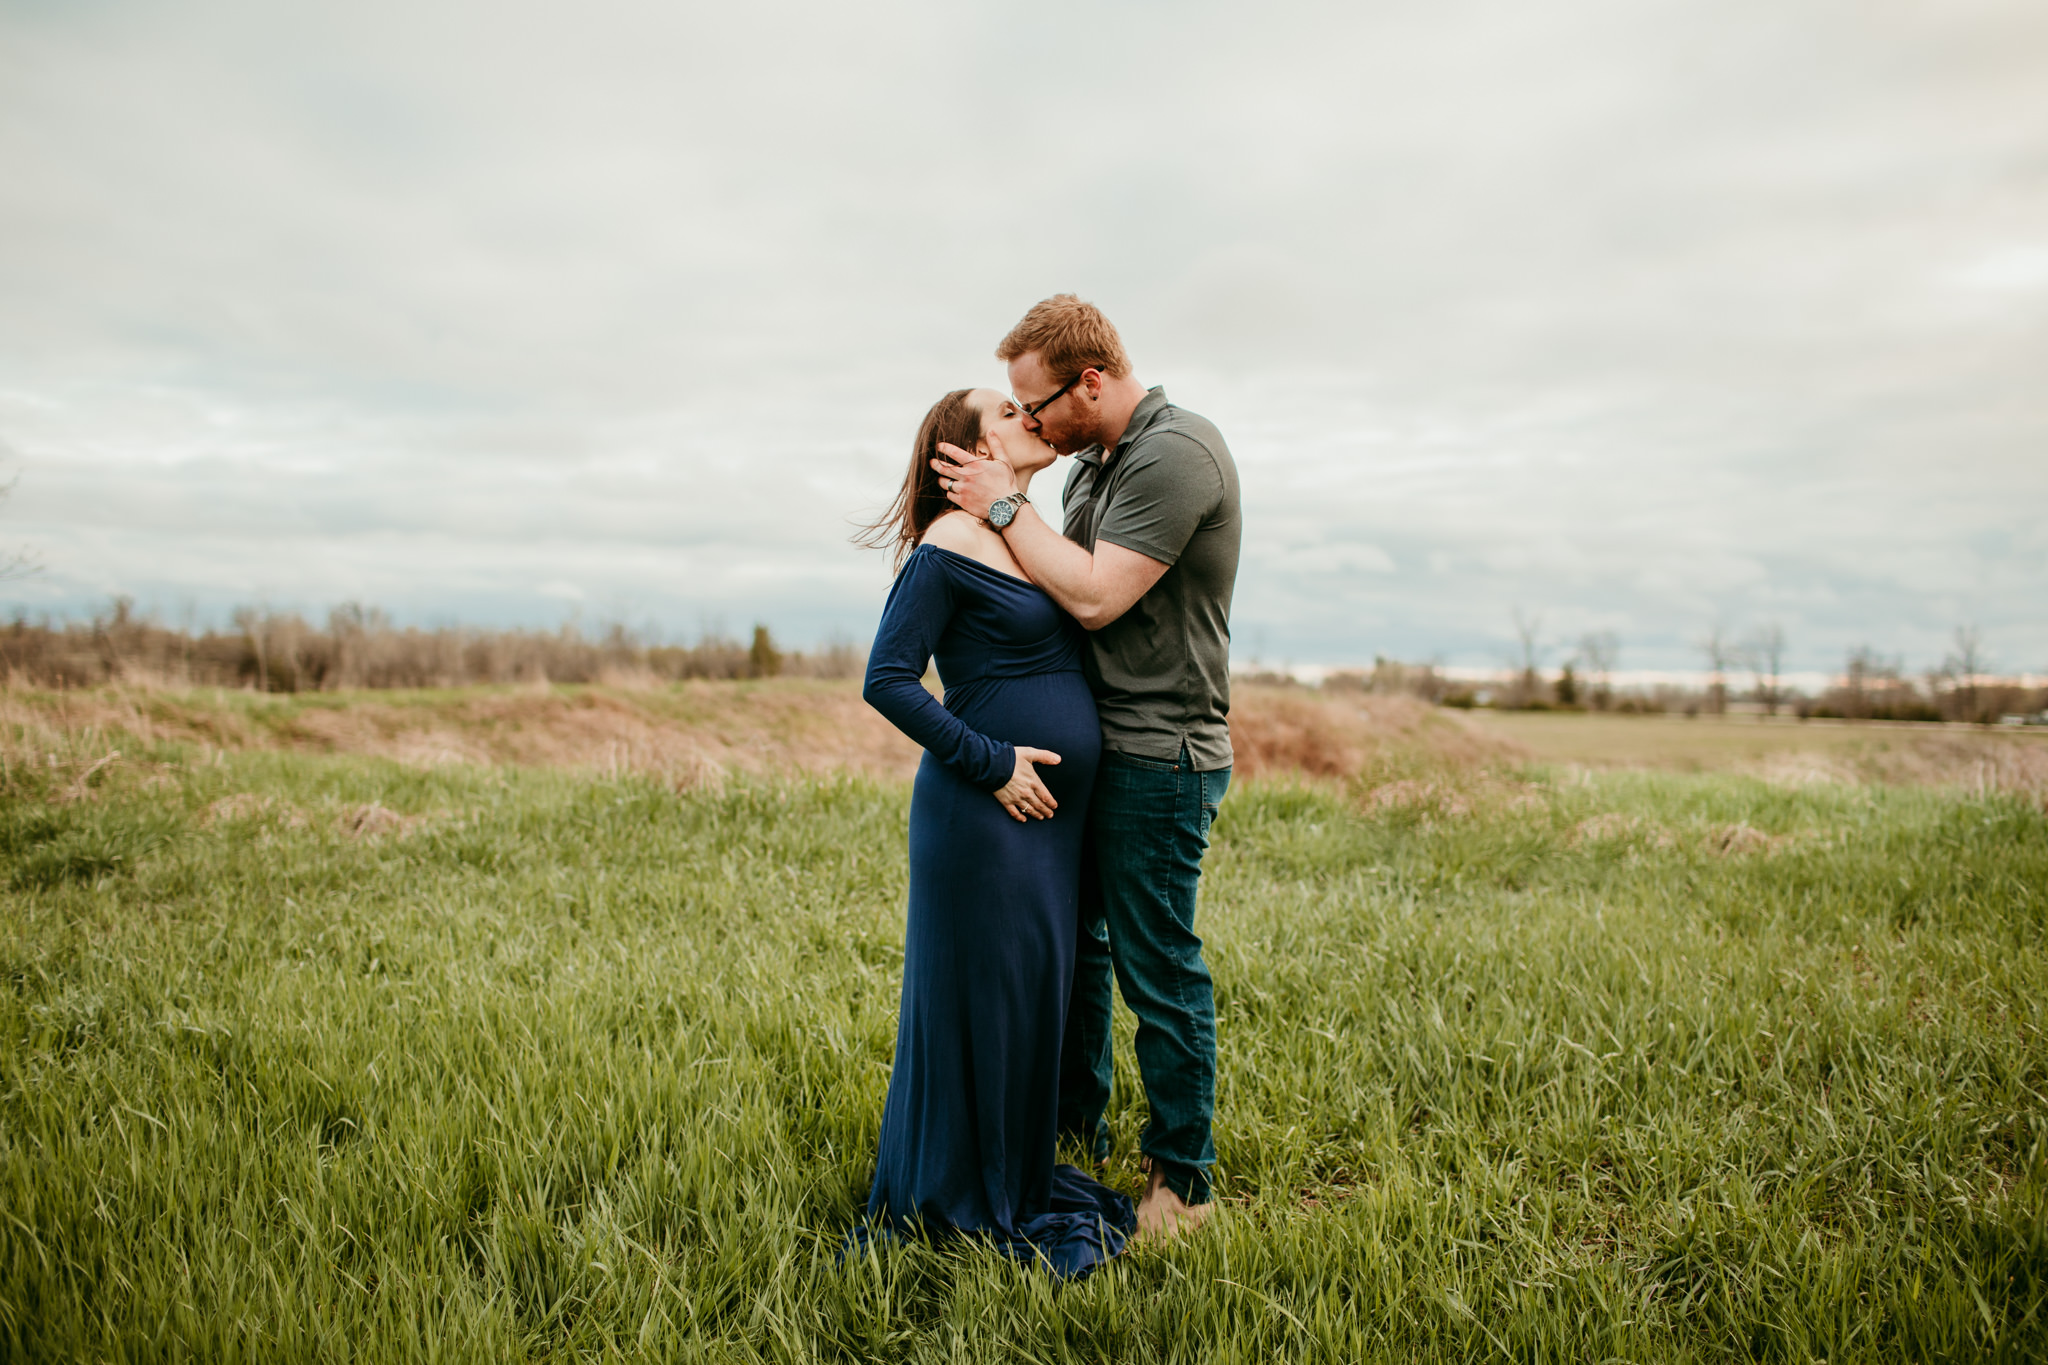 pregnant woman kissing her husband in the wind outside in a field